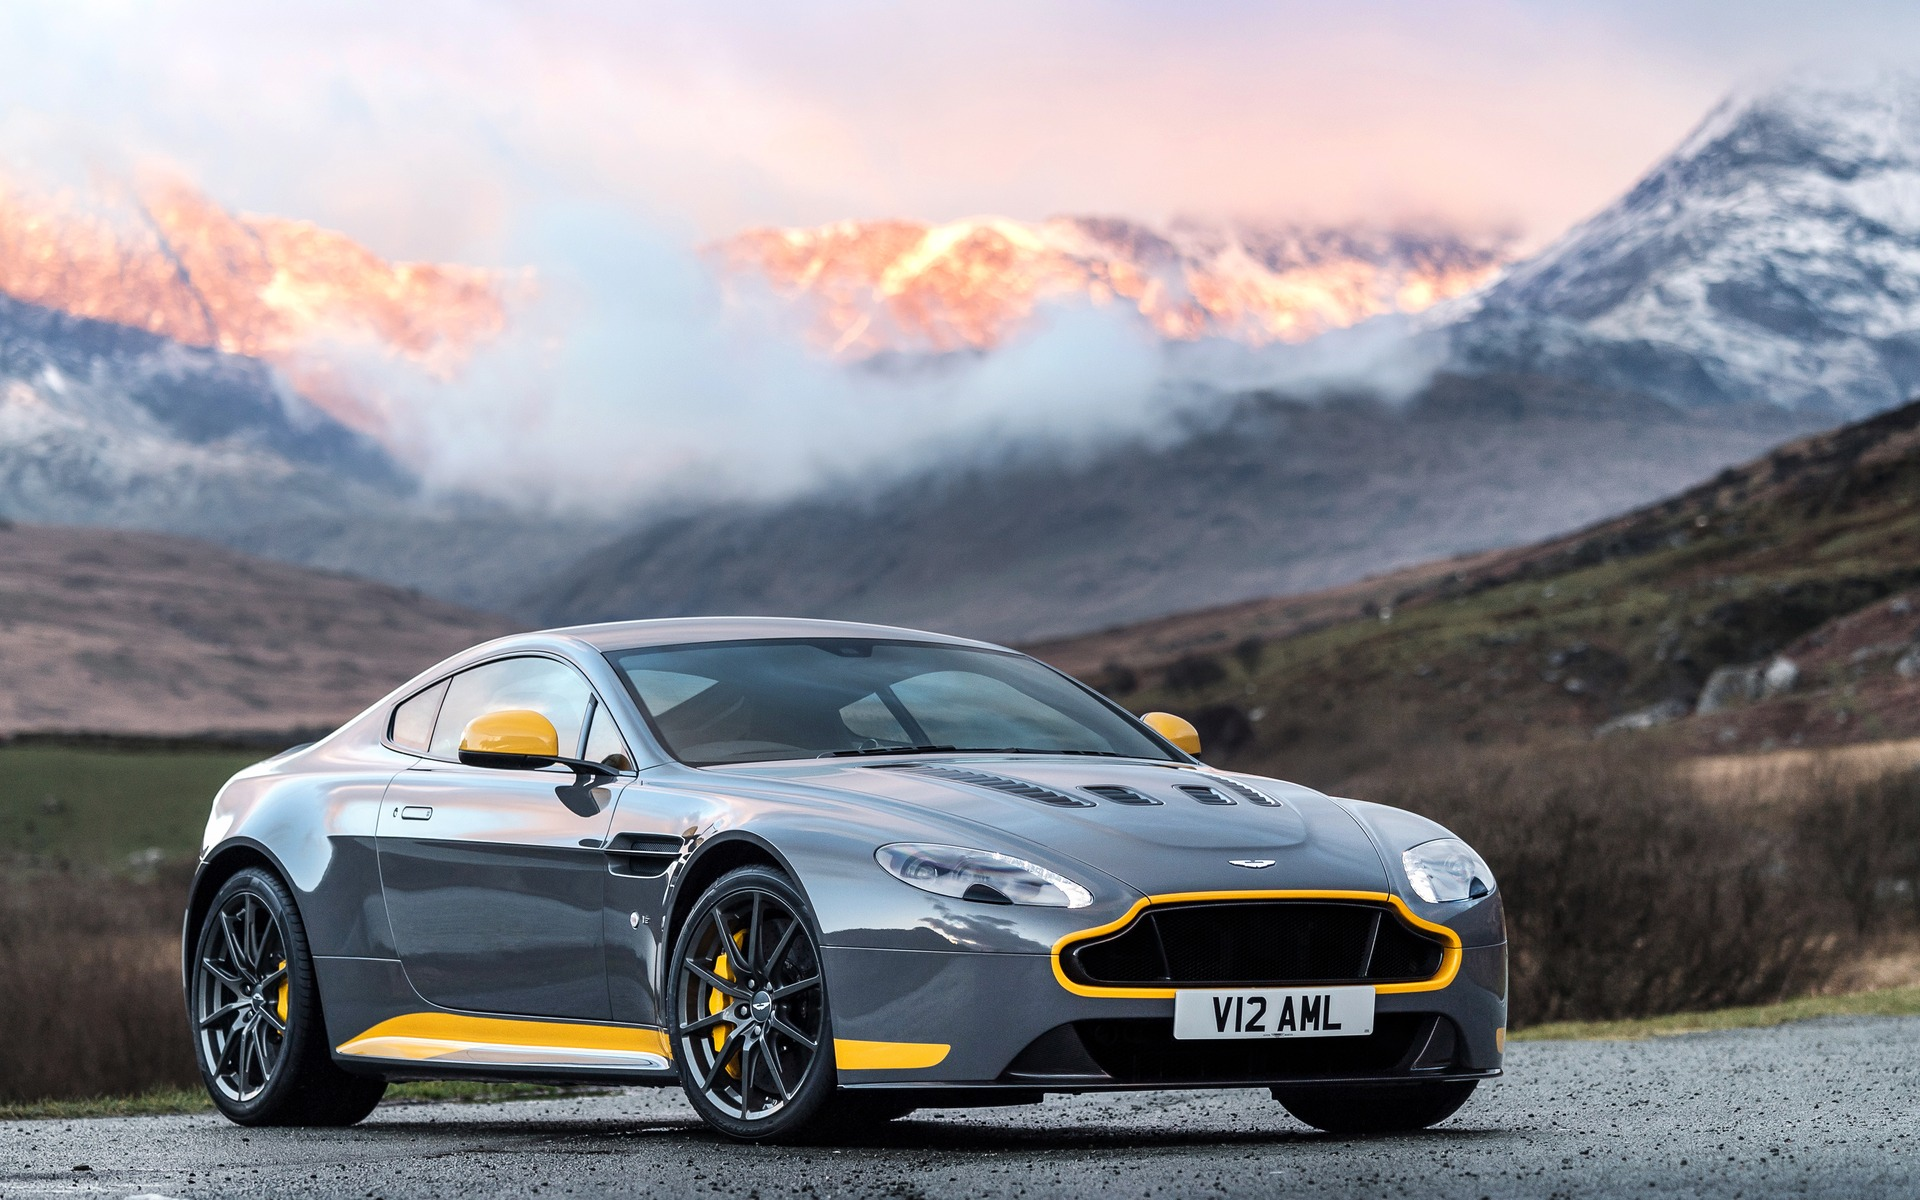 2017 Aston Martin Vantage News Reviews Picture Galleries And Videos The Car Guide